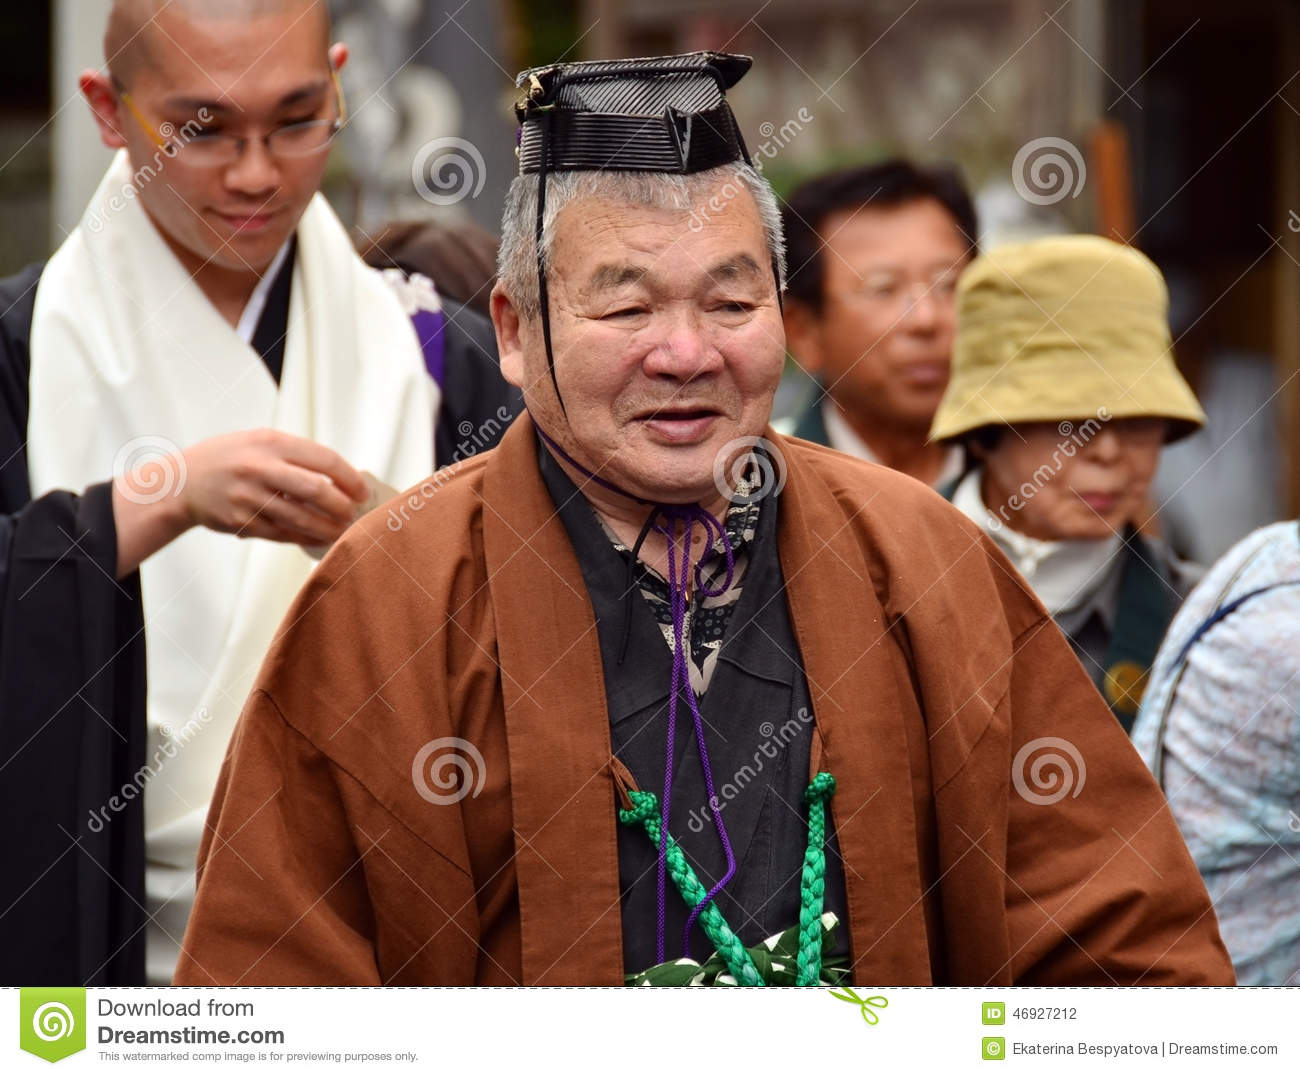 Elderly Japanese man in formal Shinto priest attire